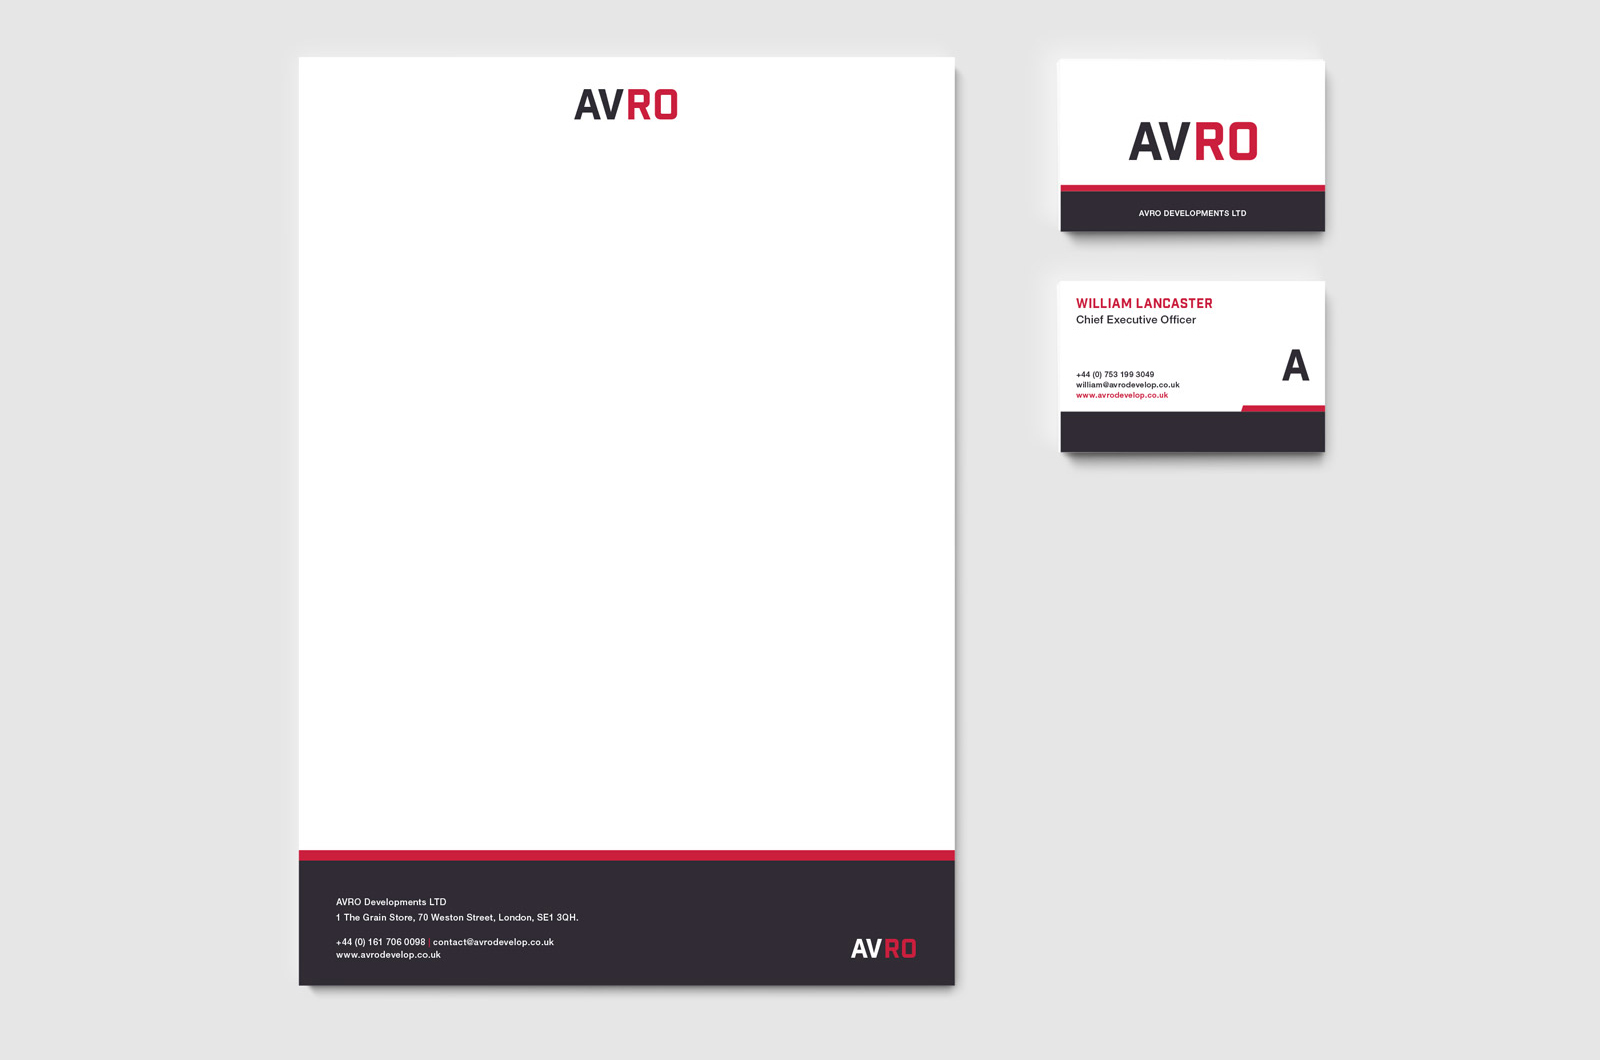 AVRO Stationary 02